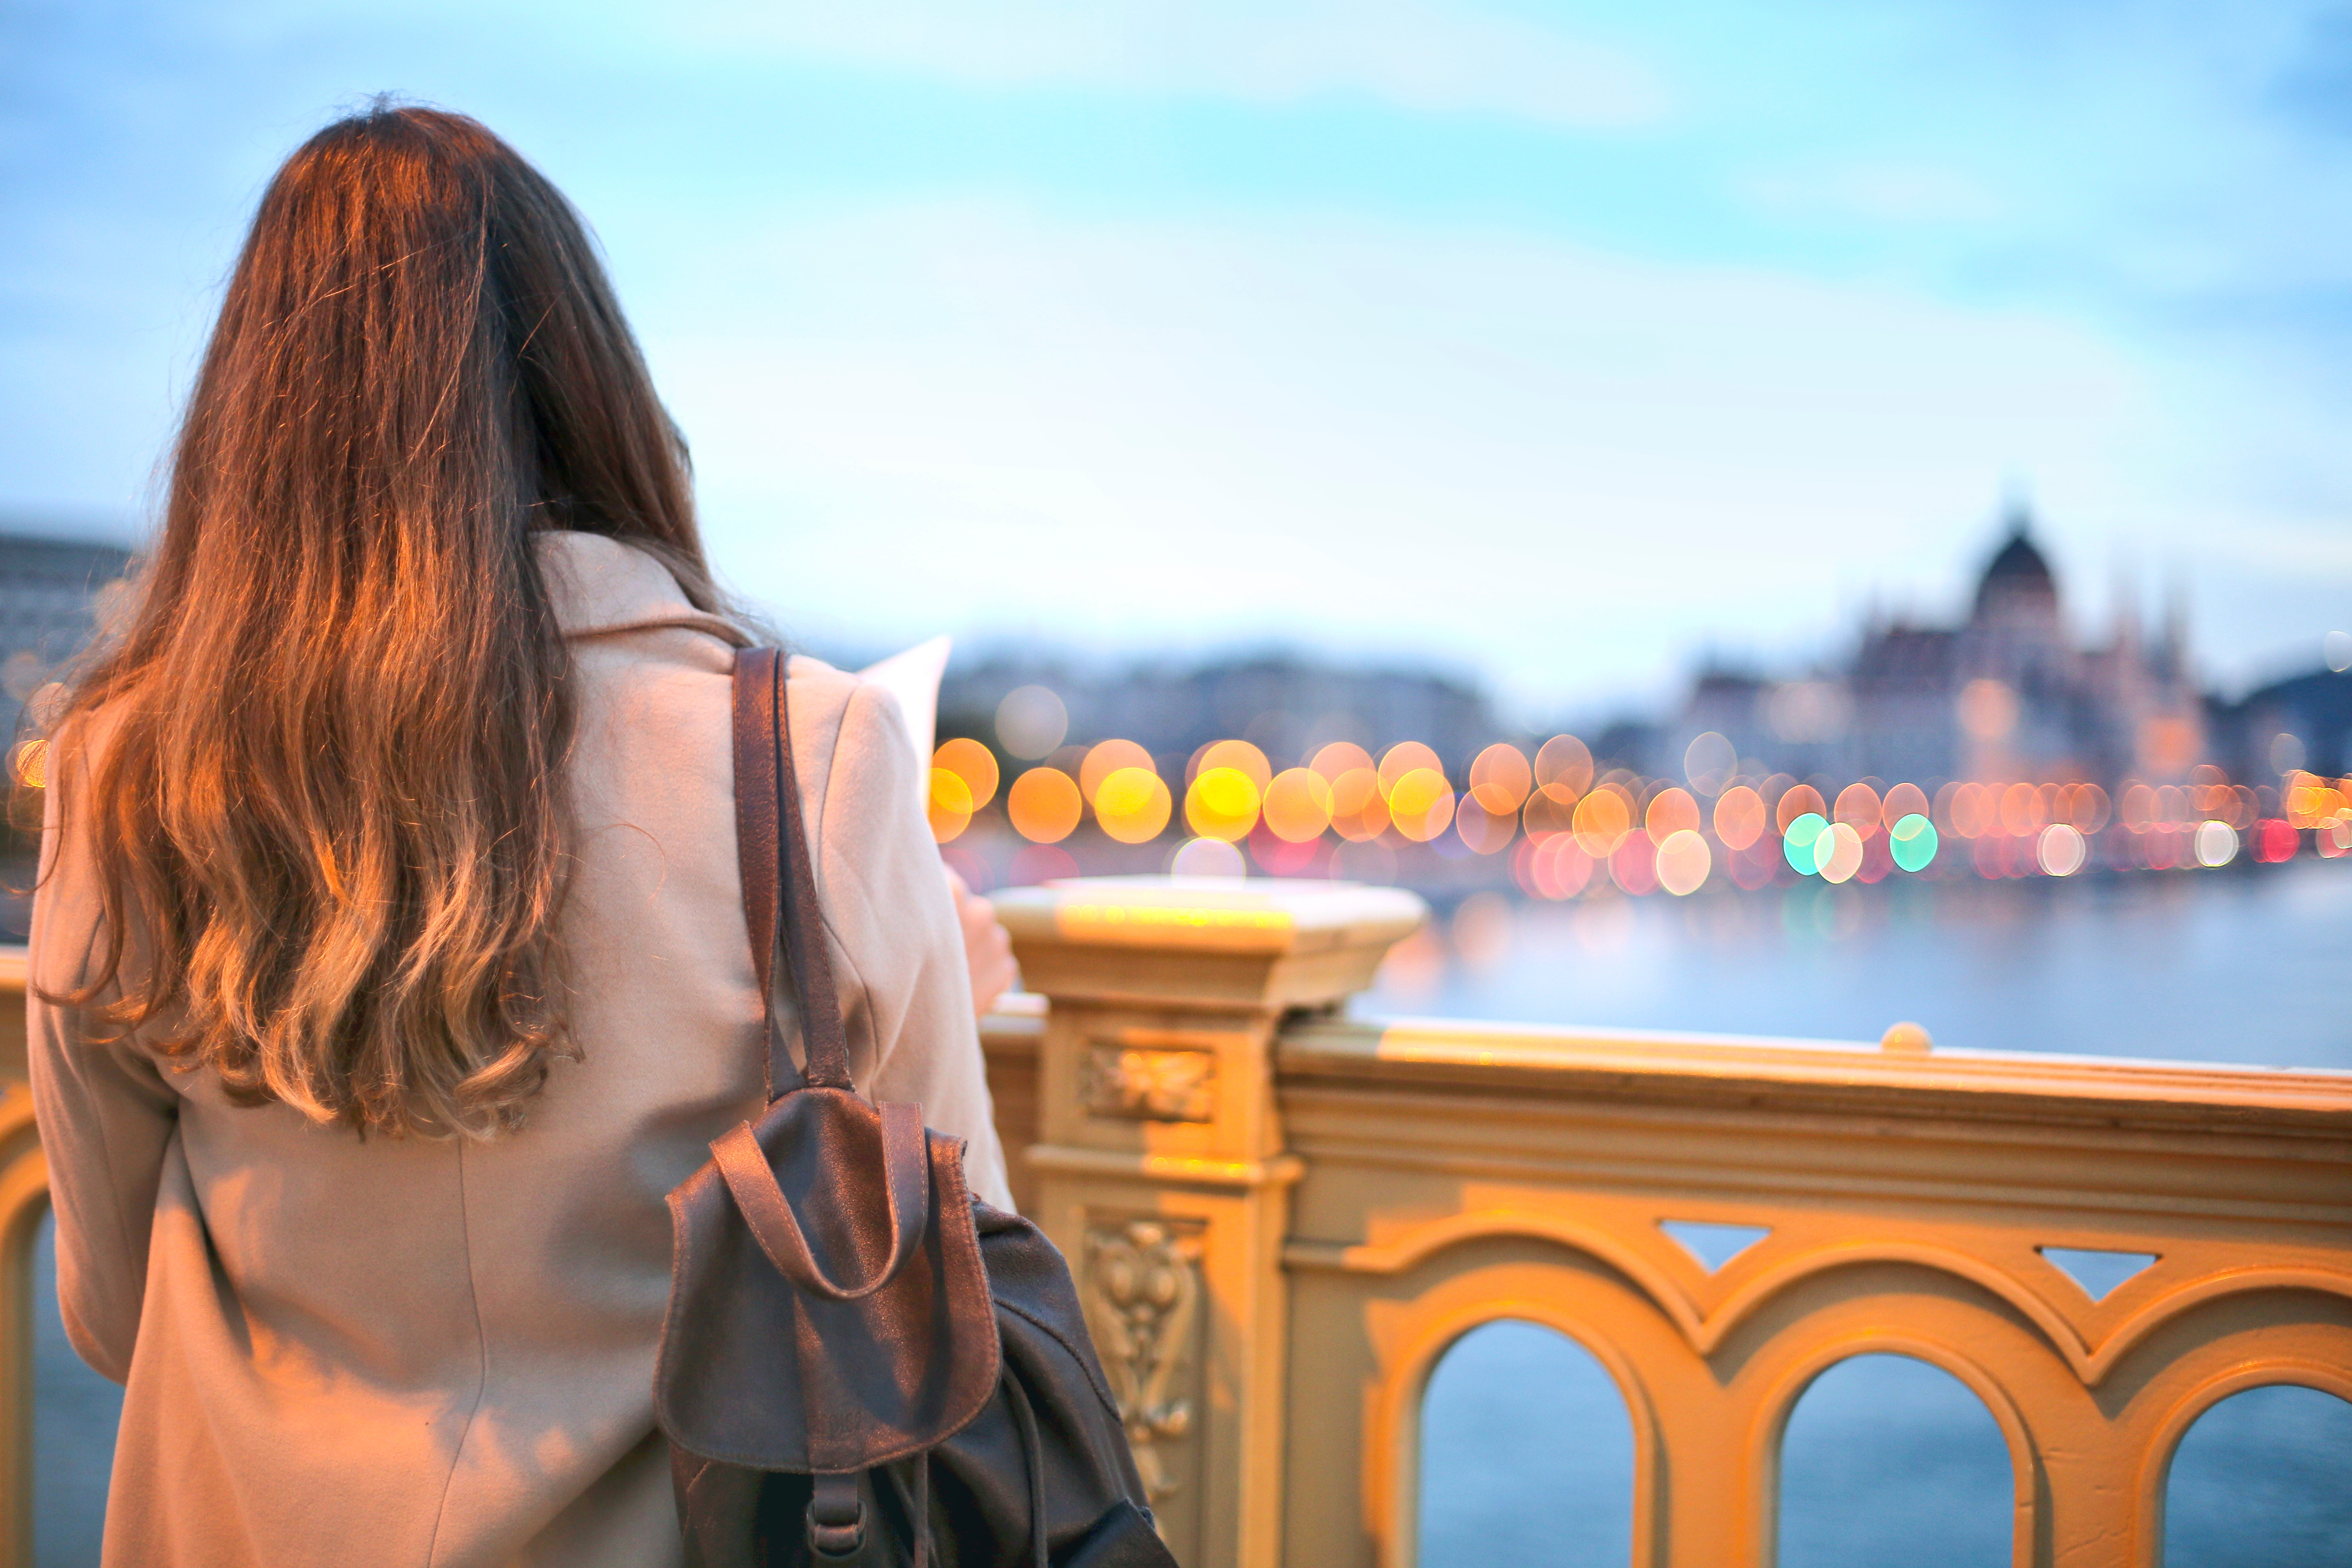 Woman Wearing Trench Coat And Black Leather Backpack, Back, Bag, Bokeh, Bridge, HQ Photo